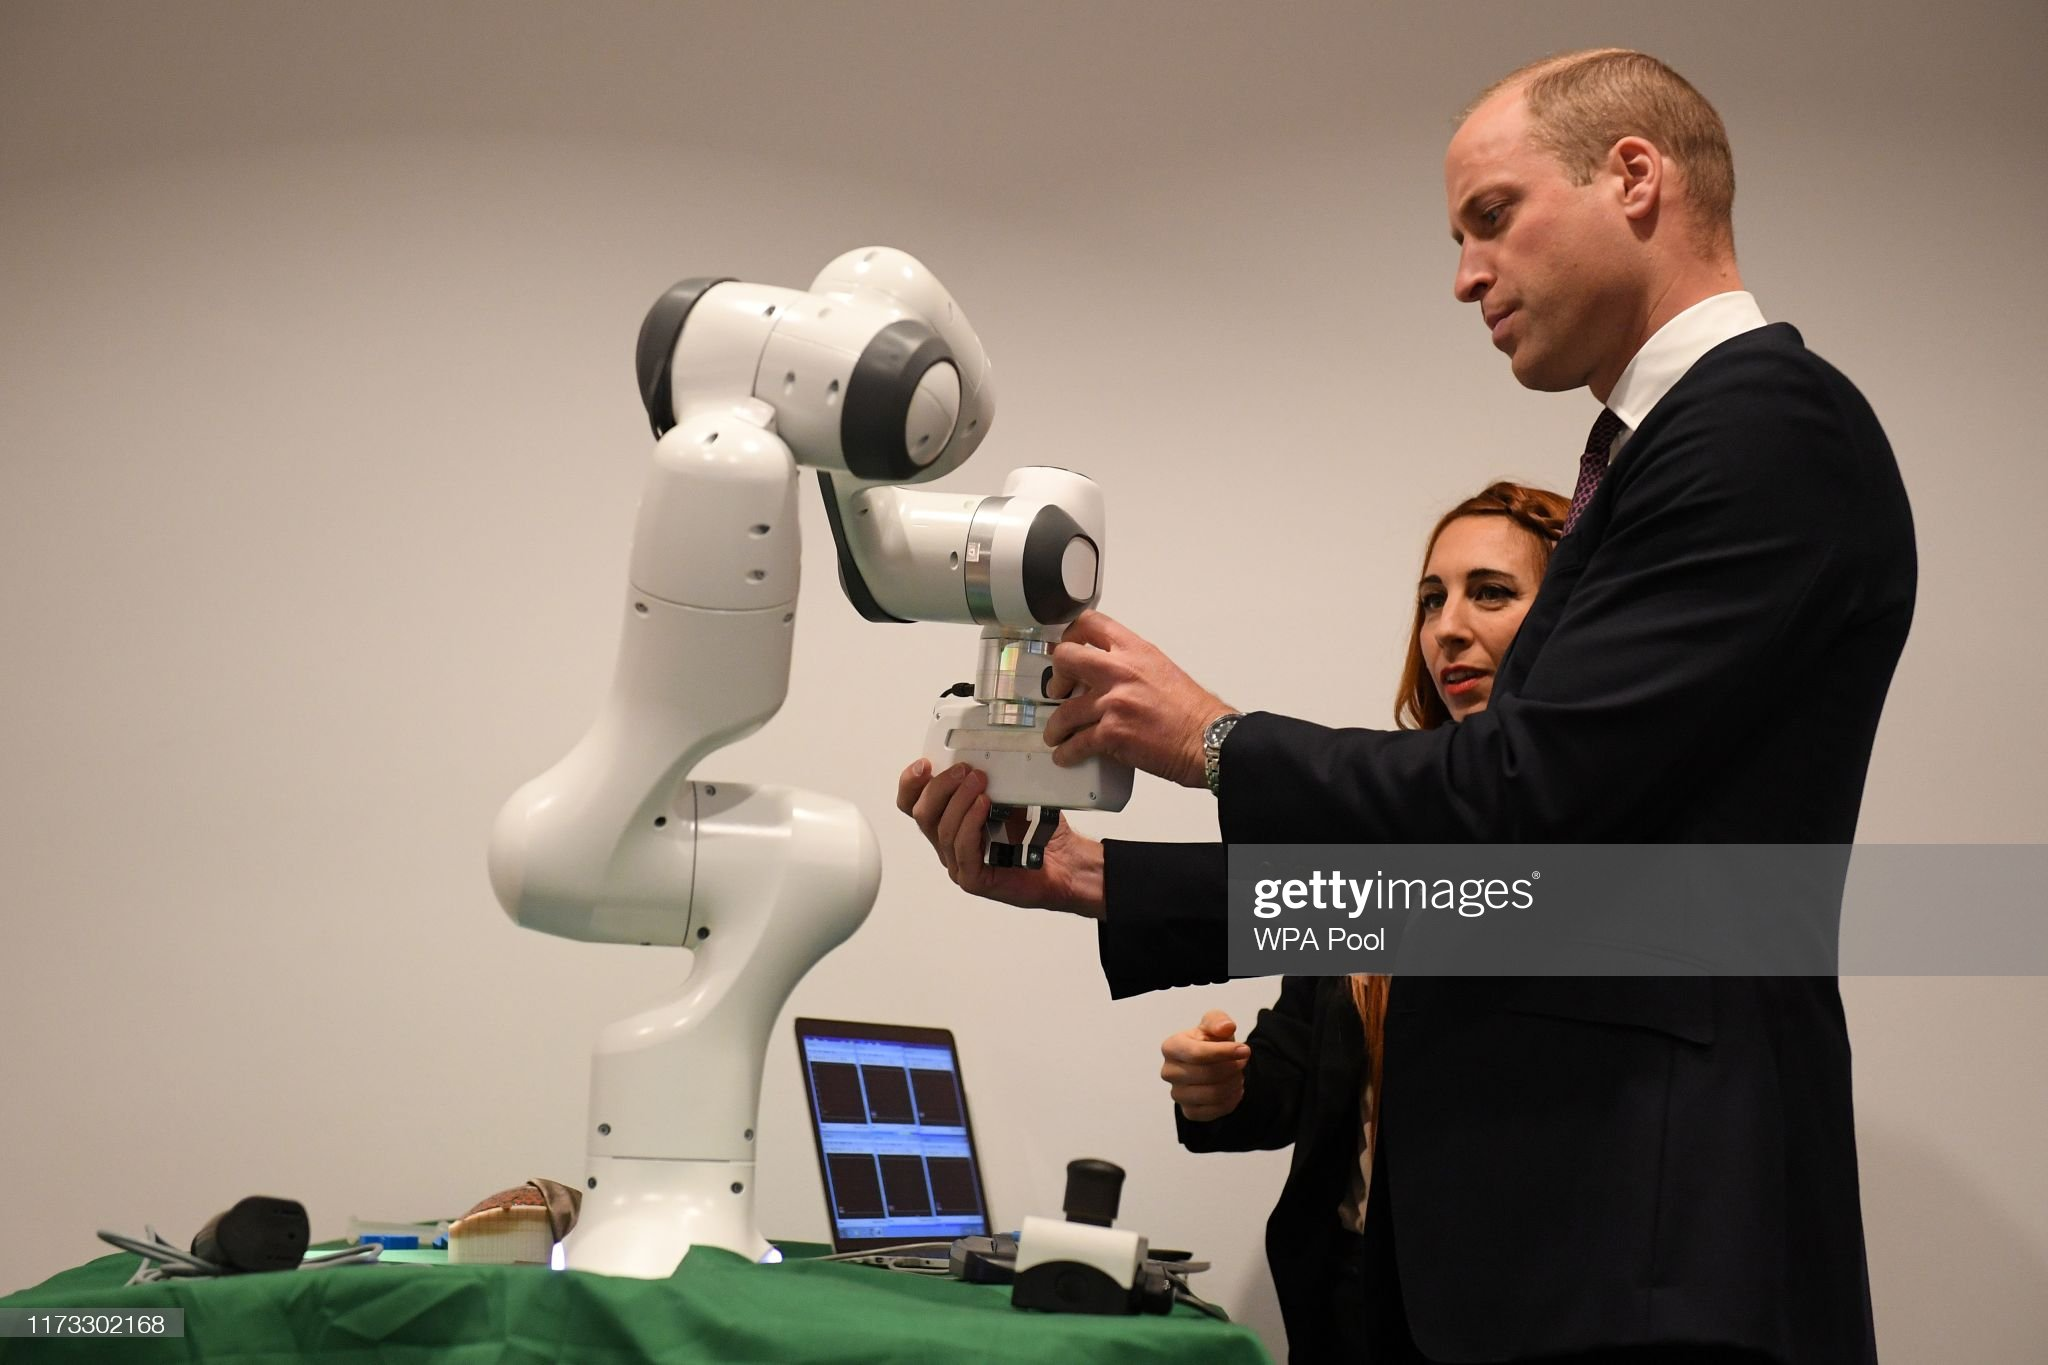 prince-william-duke-of-cambridge-interacts-with-a-robotic-arm-to-up-picture-id1173302168